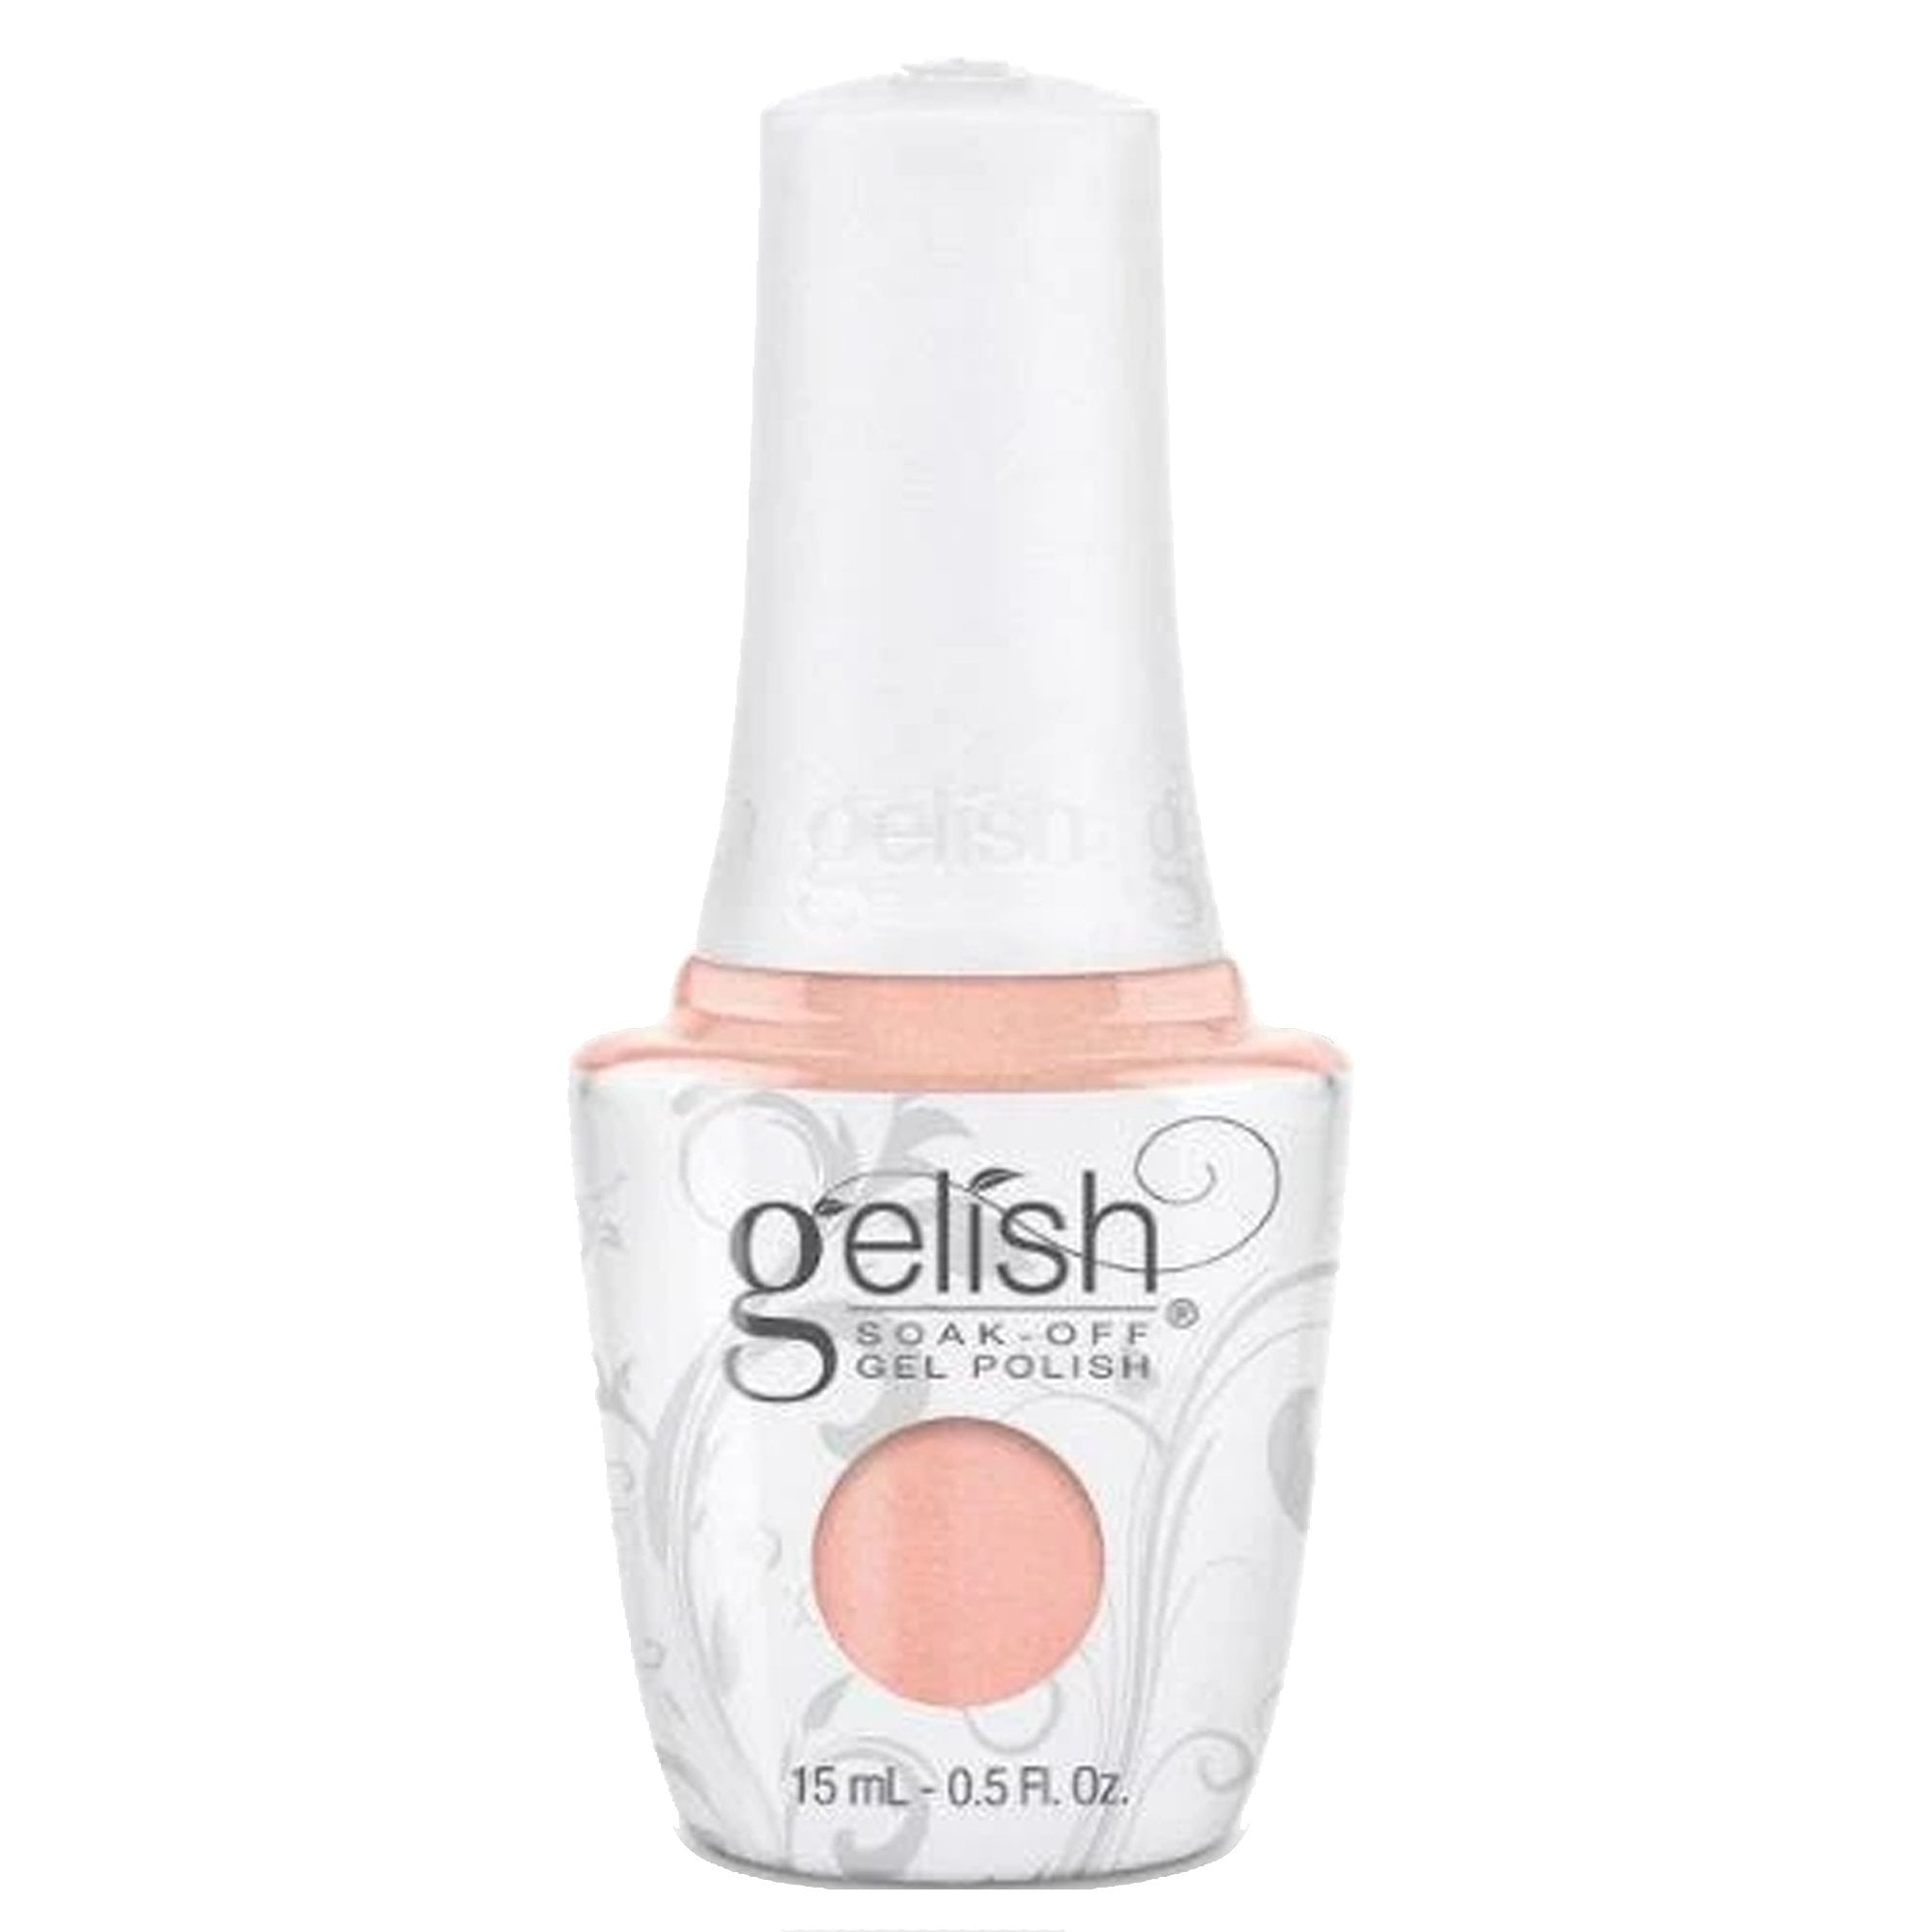 Gelish Soak-Off Gel Nail Polish - Forever Beauty 15ml